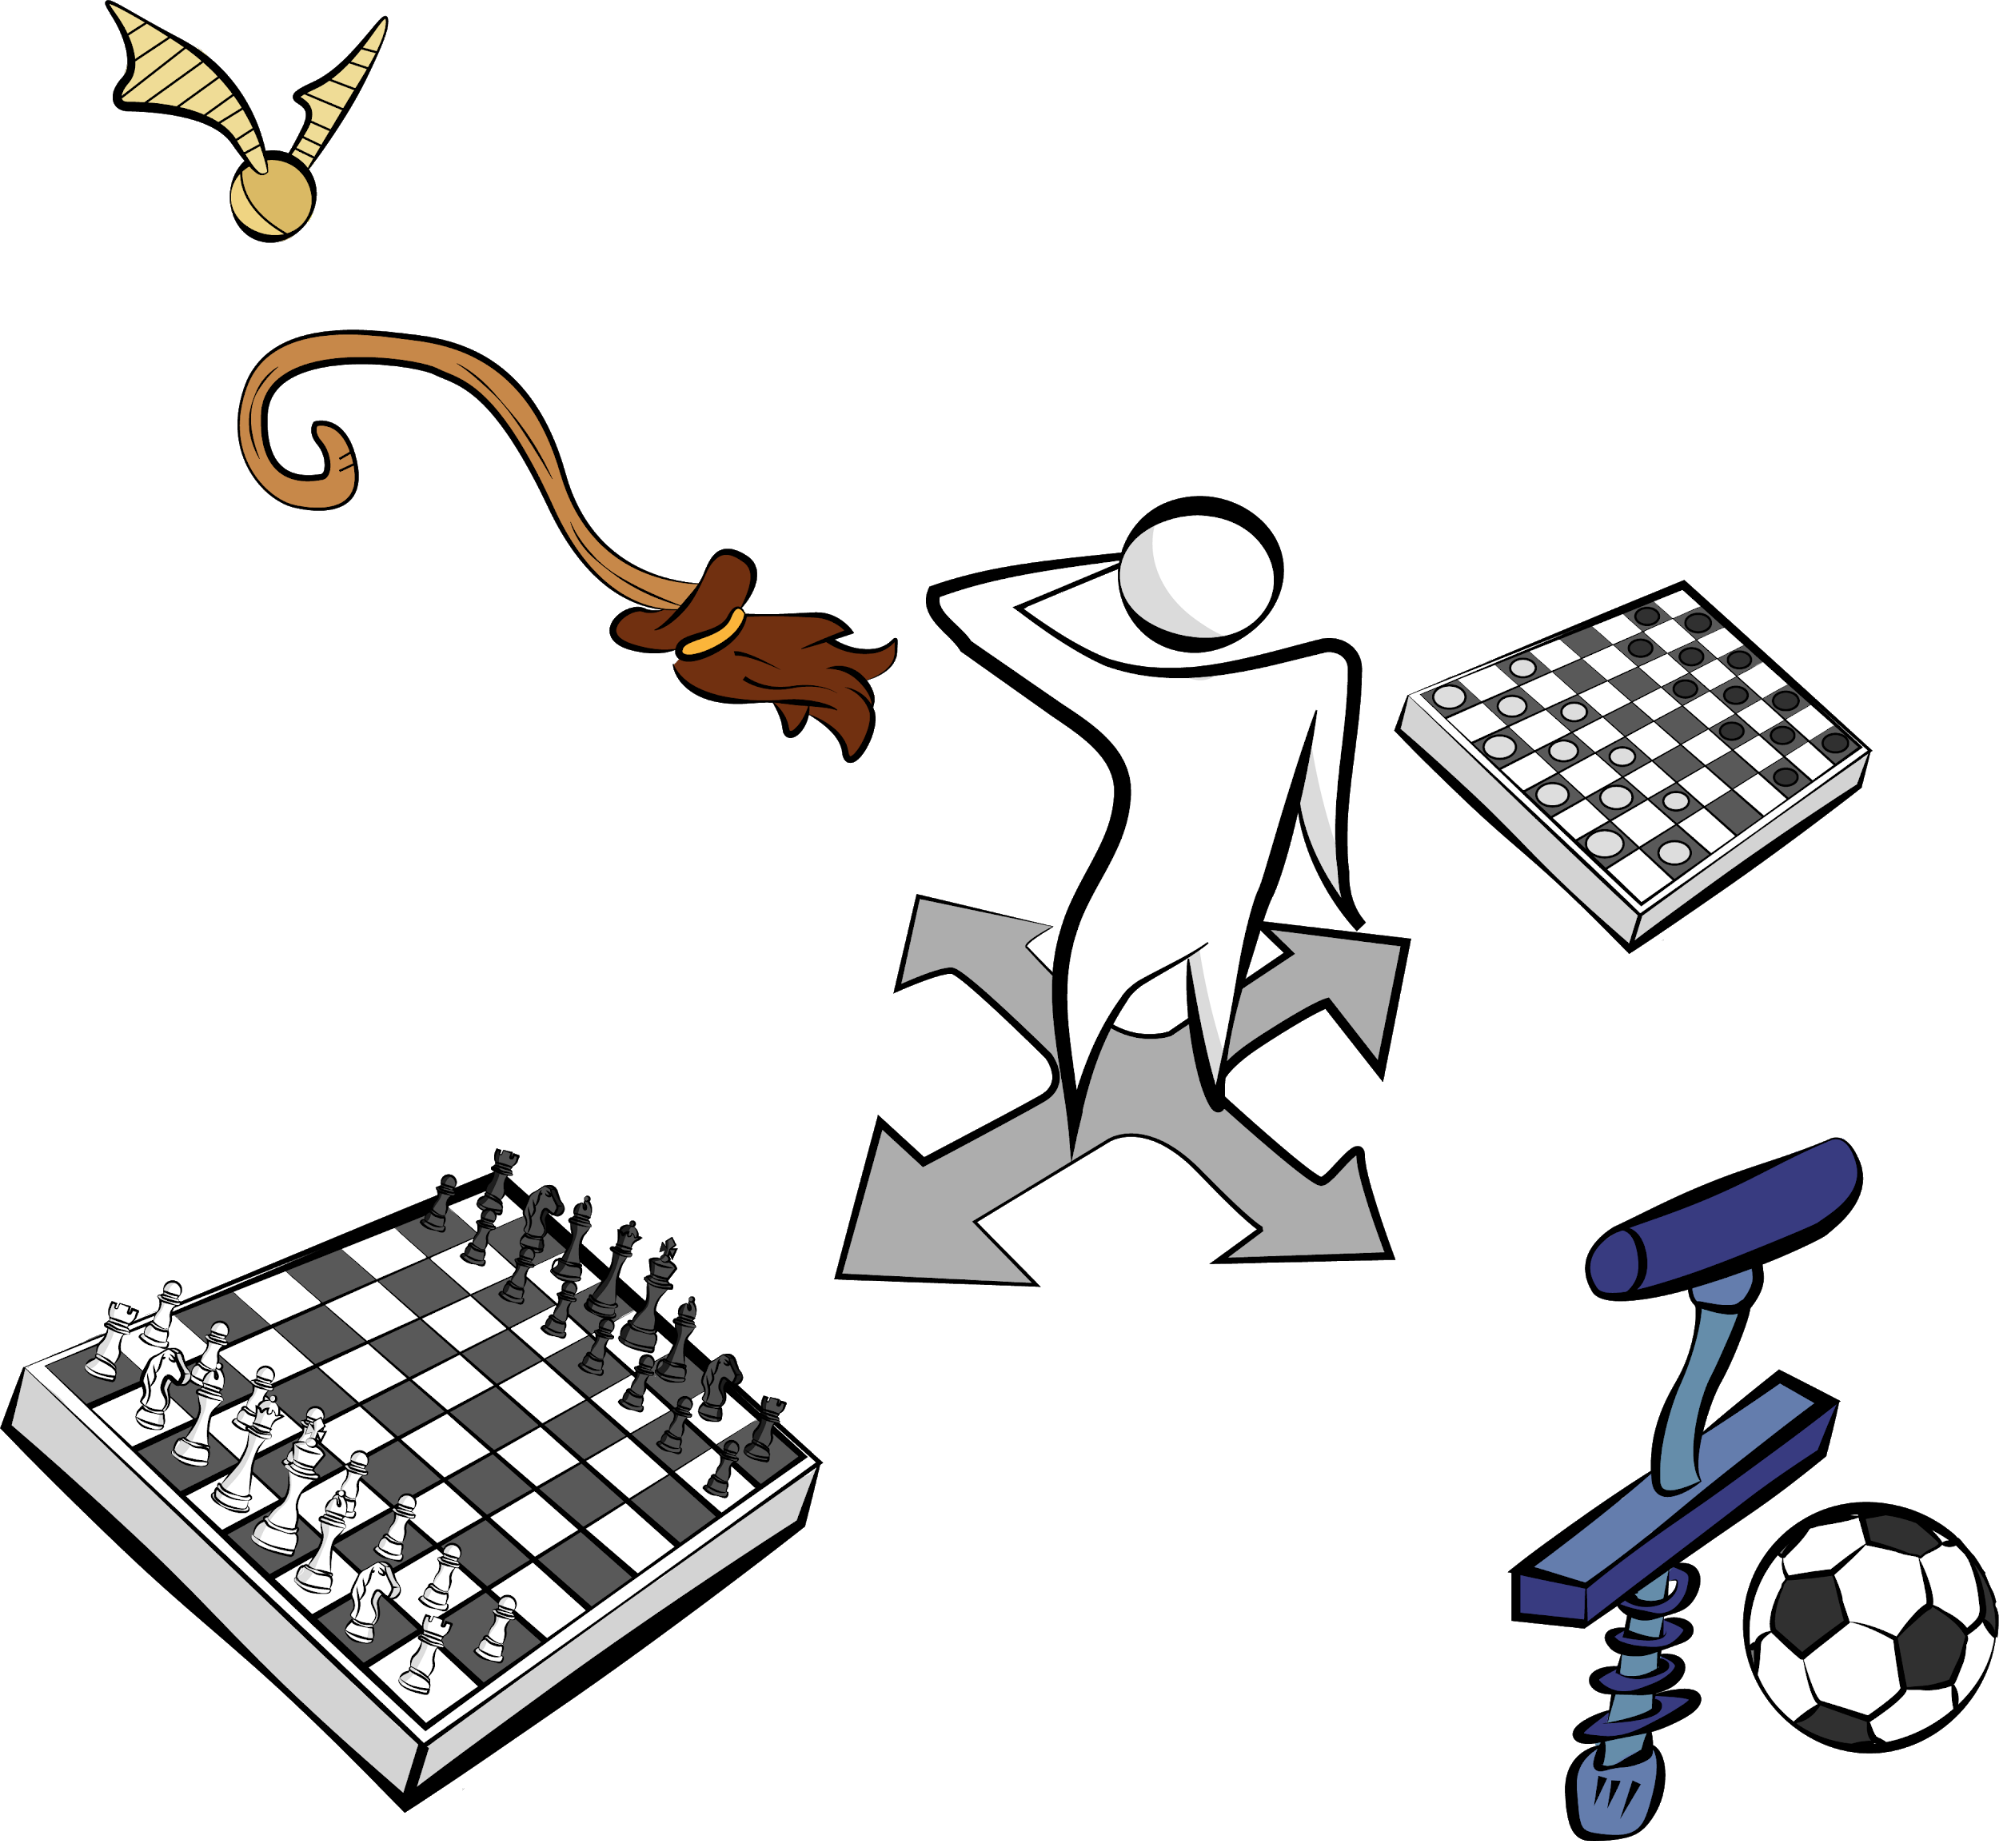 Decision between checkers, chess, Quidditch, and Calvin Ball